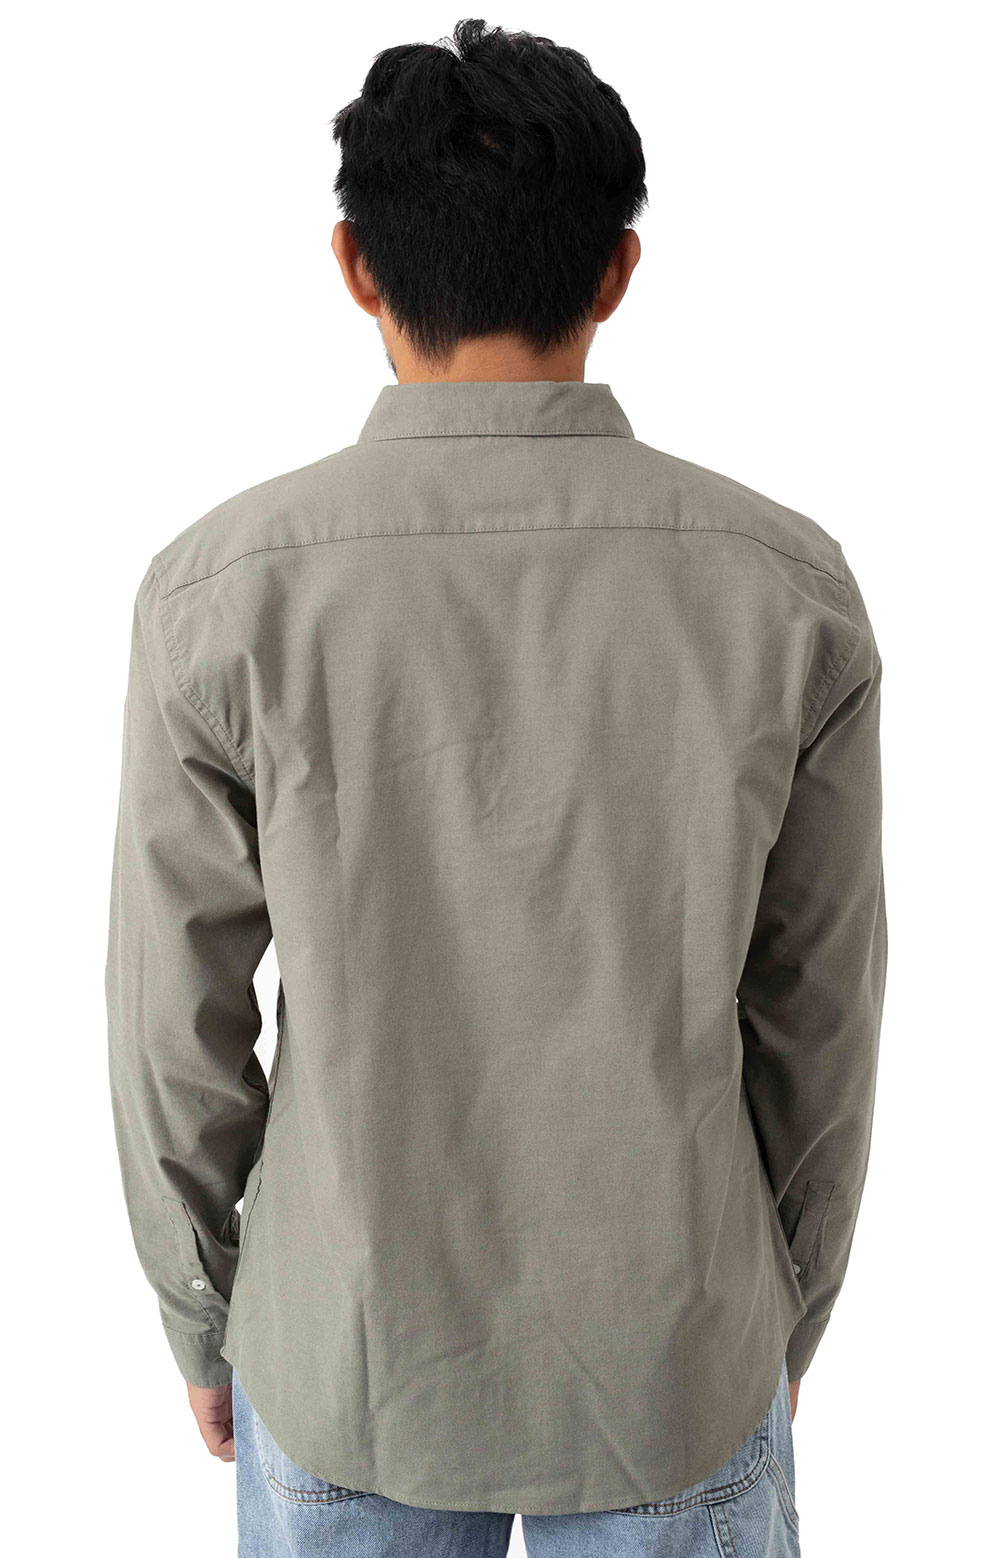 That'll Do Stretch Button-Up Shirt - Aloe 3